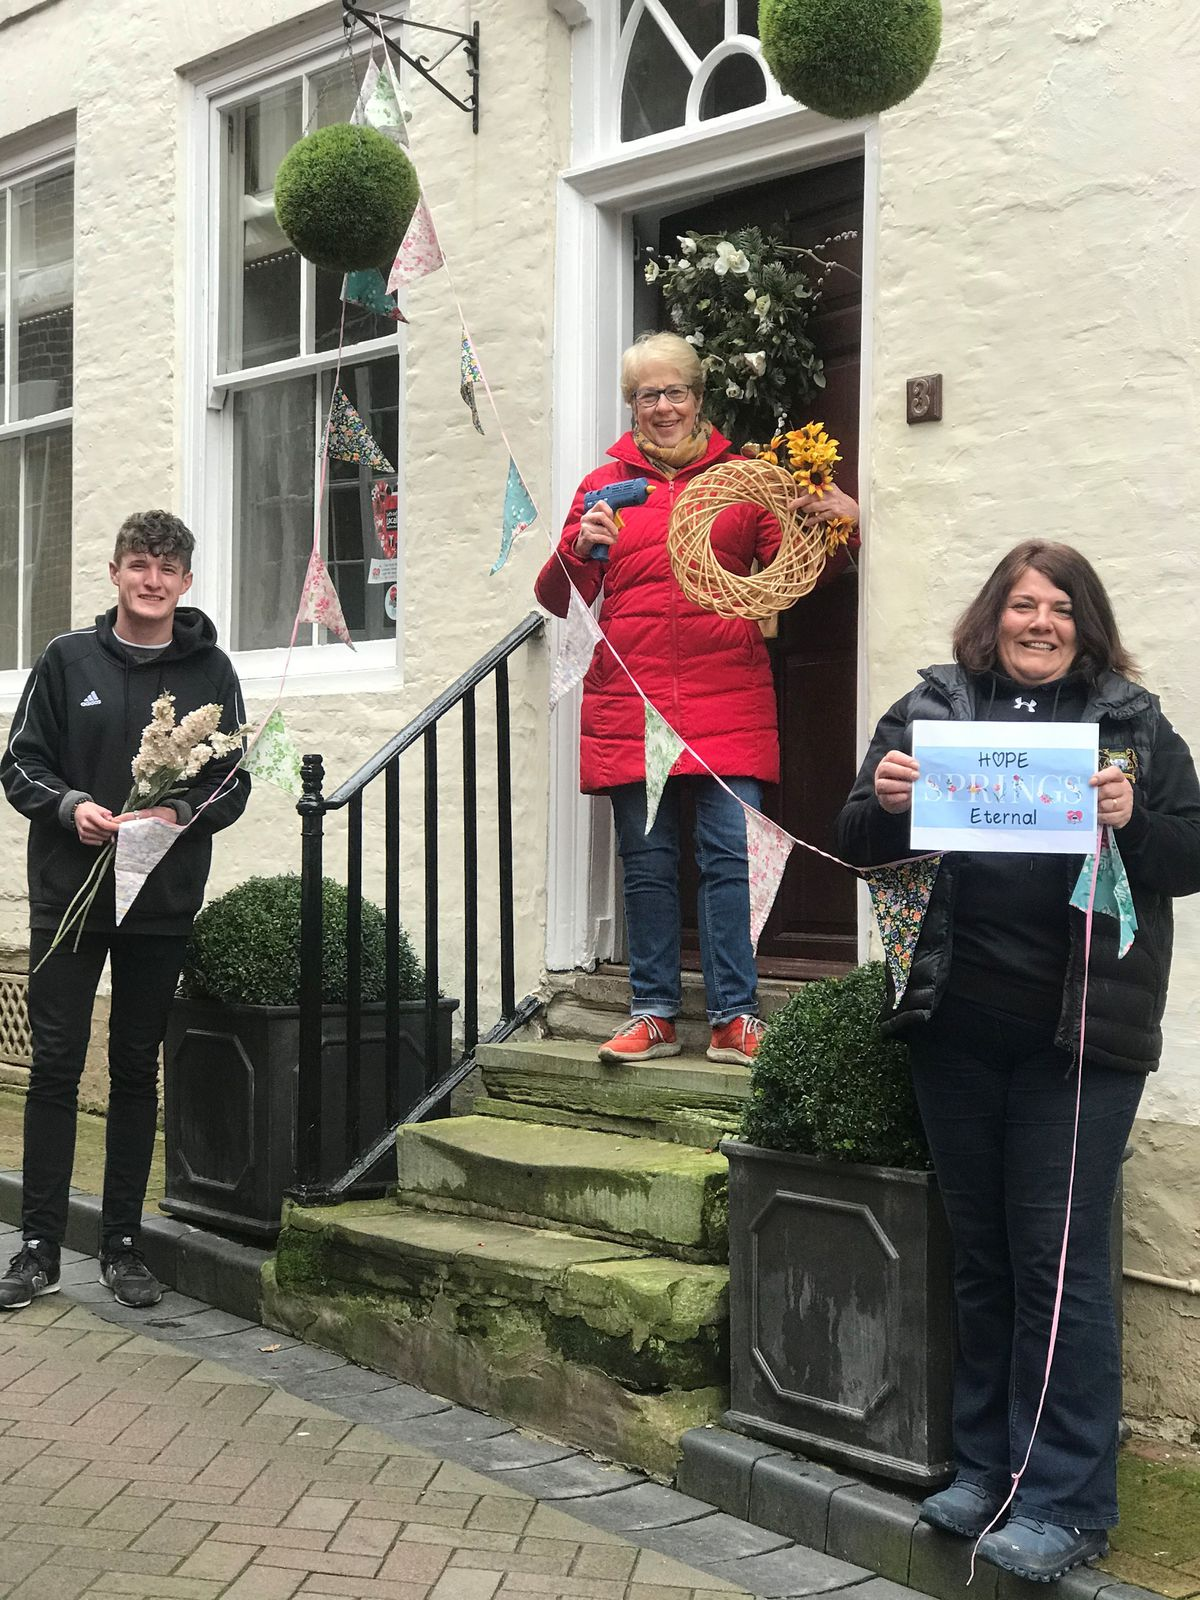 Will Simmons of Blooms of Bridgnorth, Gillie Aked, a high town resident and Bridgnorth WI member and Nerys Arch, low town resident Bridgnorth and Love Bridgnorth administrator